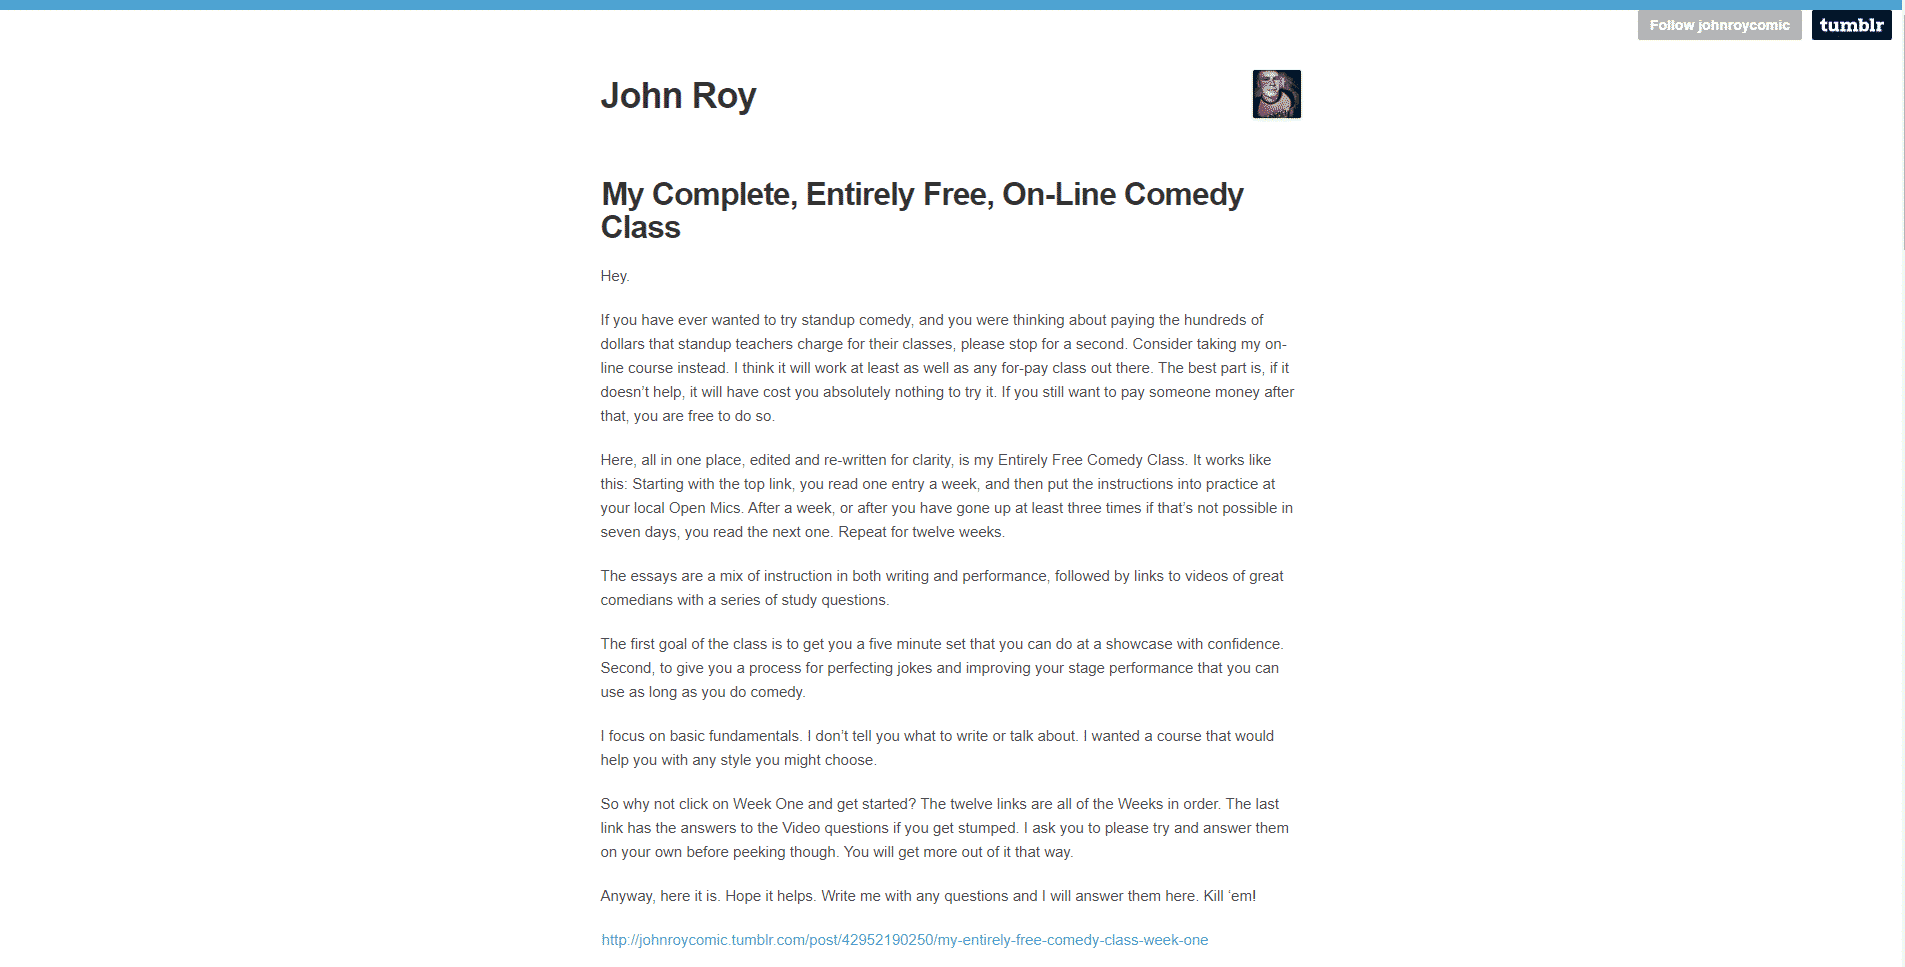 John Roy's Learn Comedy Lessons Online